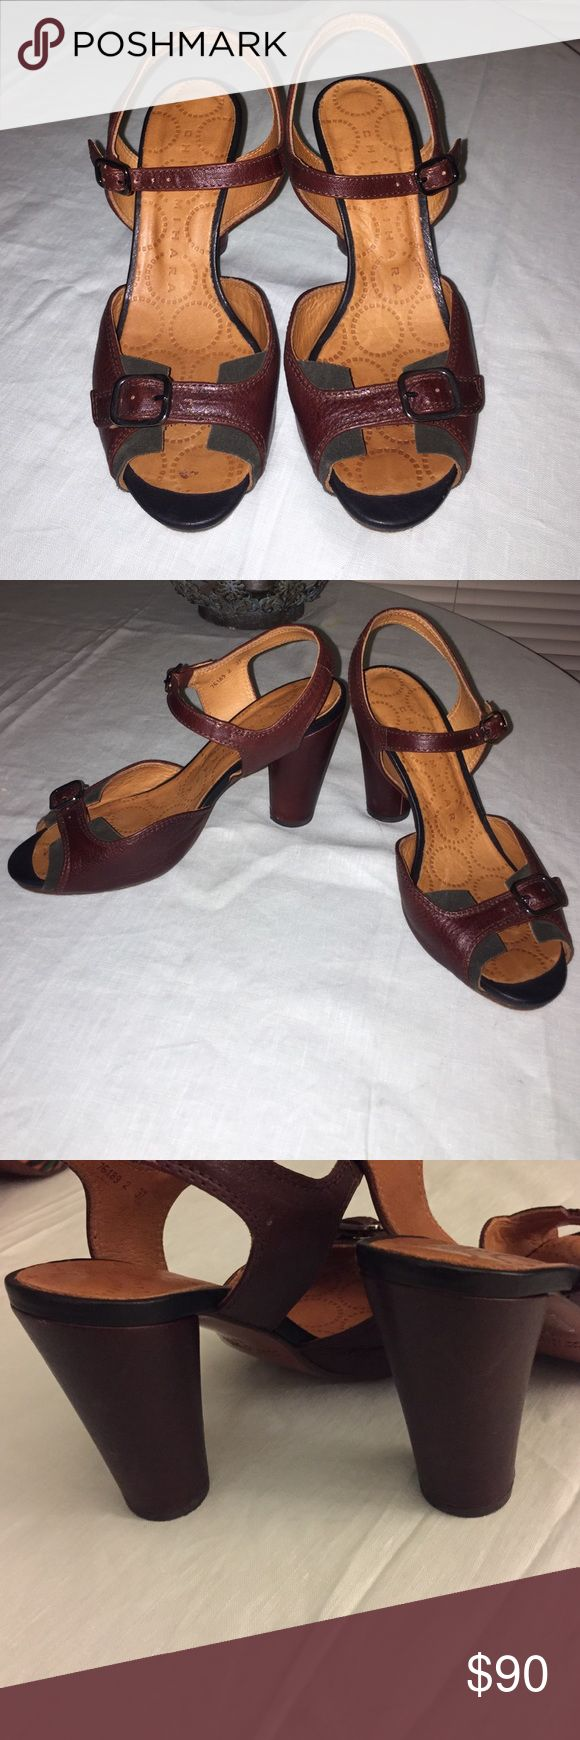 SALE! Chie Mihara heels Chie Mihara circle block heels. Burgundy leather with dark green suede detail by the toe. Very minimal wear. Great fall shoe! Size 37. Anthropologie Shoes Heels